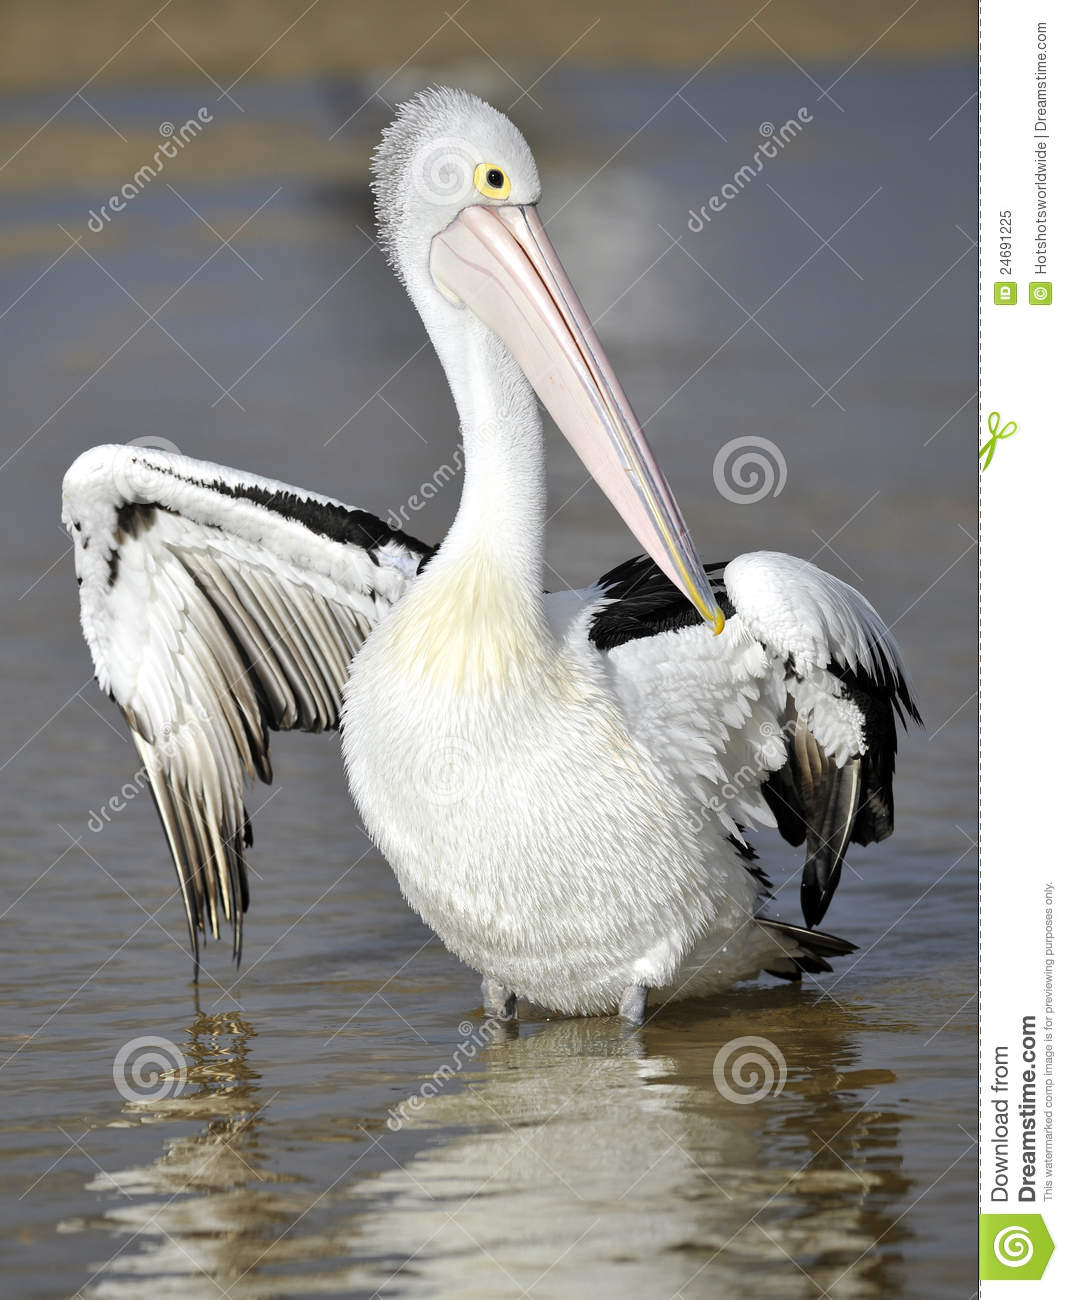 Australian Pelican, White Bird, Australia Royalty Free Stock Photo.